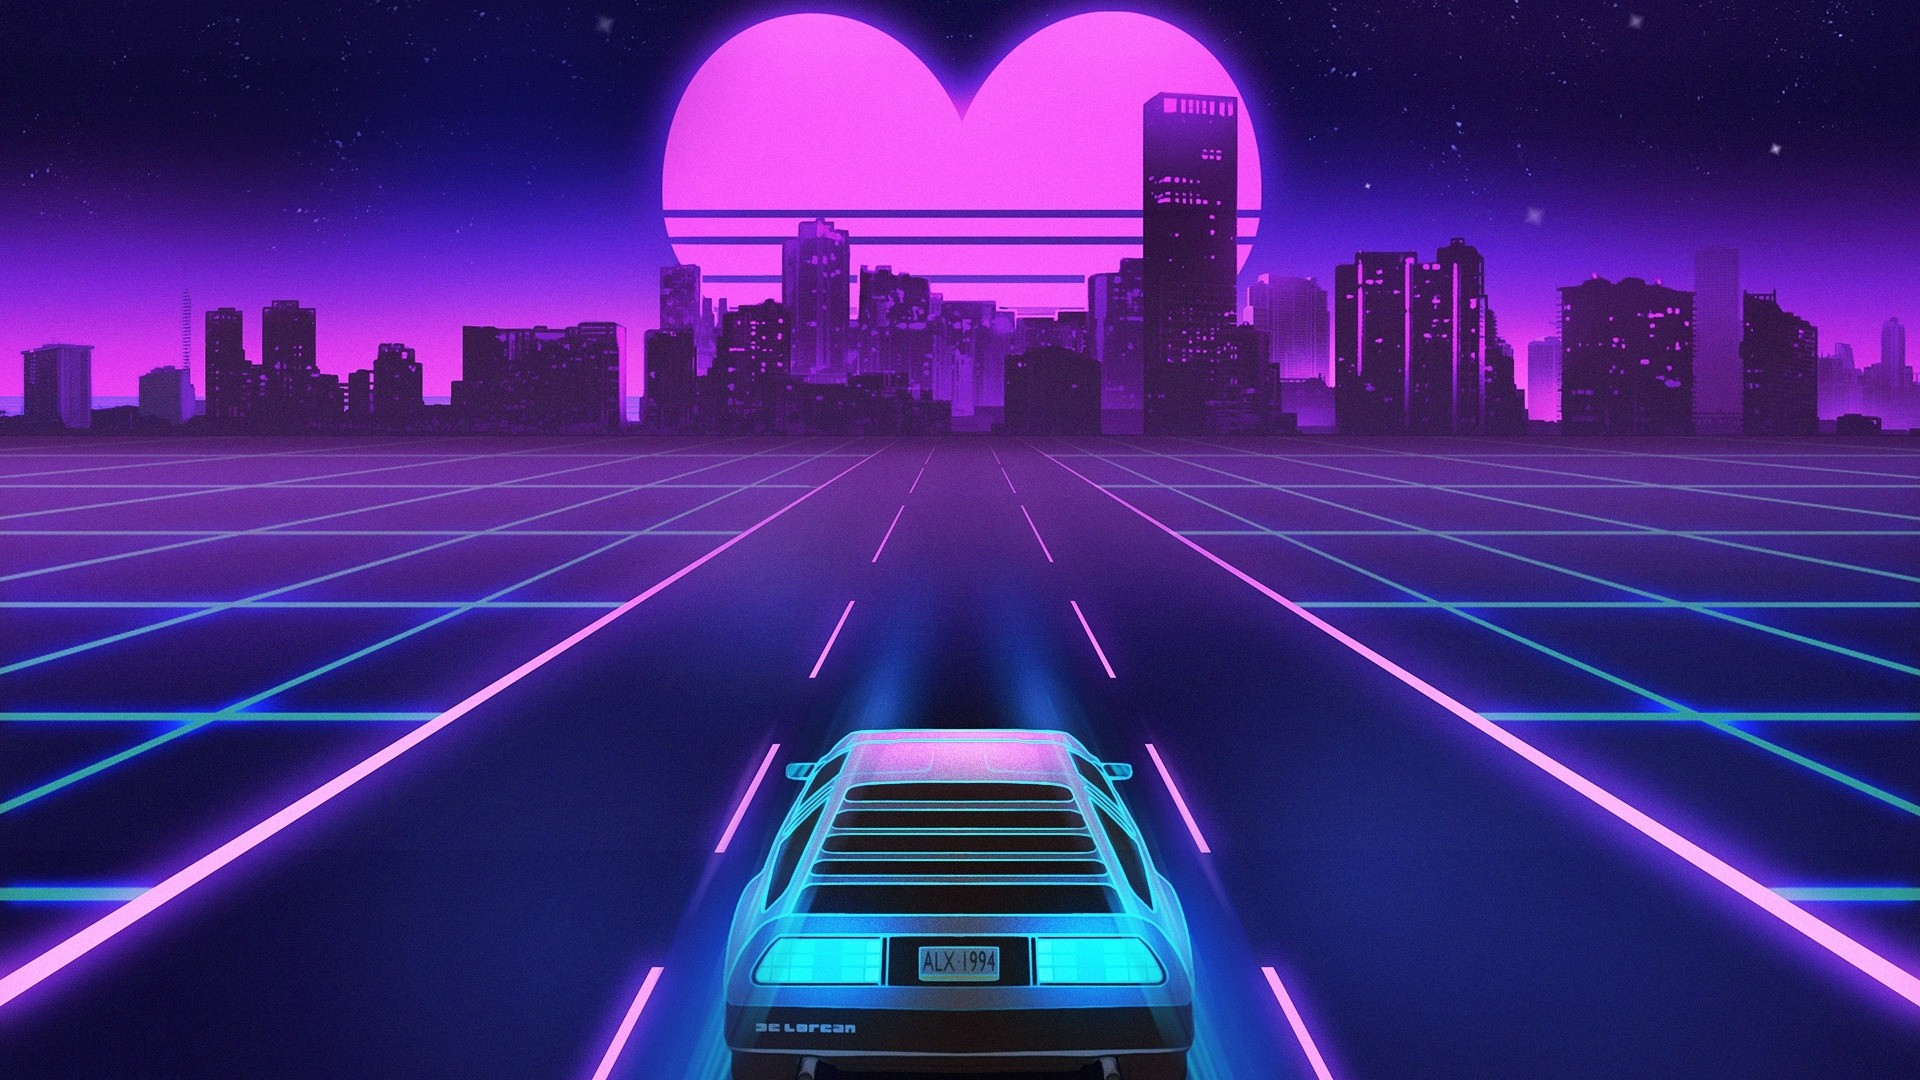 Aesthetic Retro Wallpapers: 19 Images - WallpaperBoat